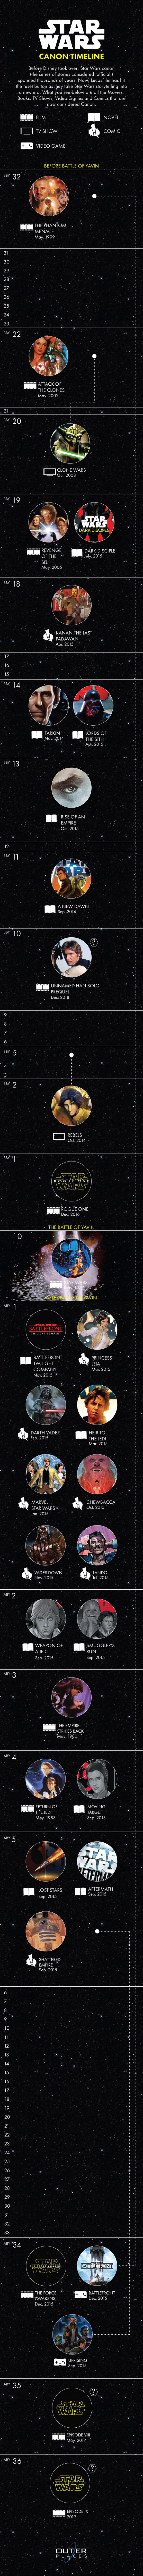 """A Timeline Of The New """"Star Wars"""" Canon Reveals All That's Officially Happened 